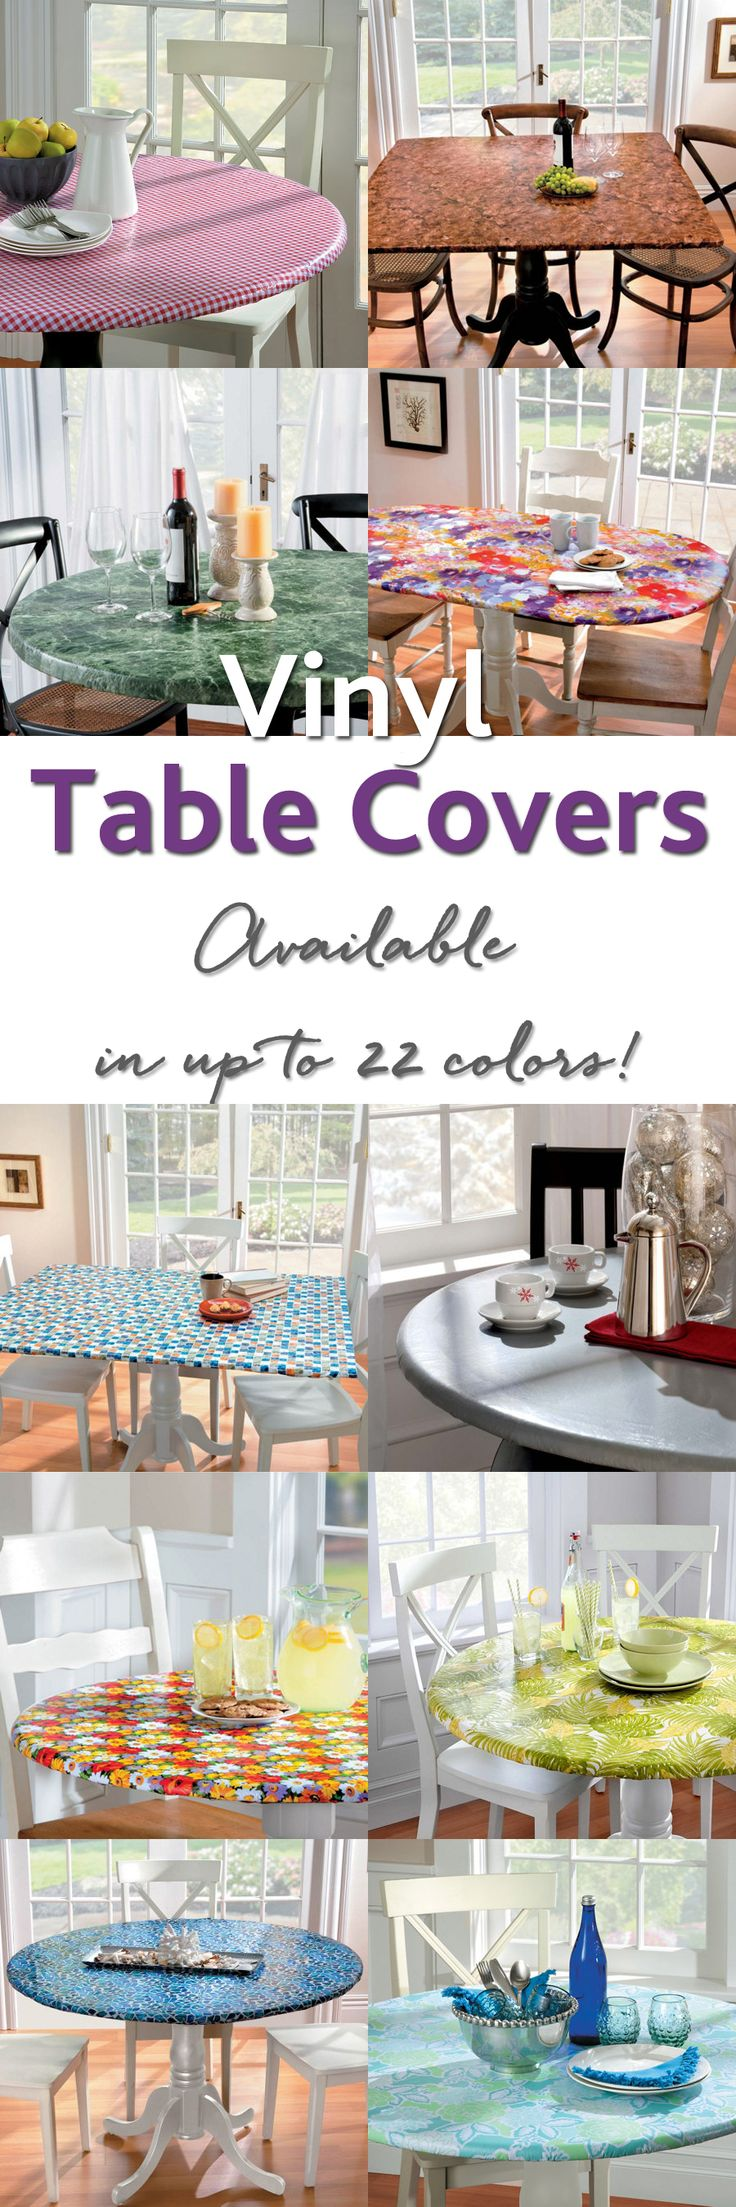 98 Dining Room Table Covers Protection Emejing